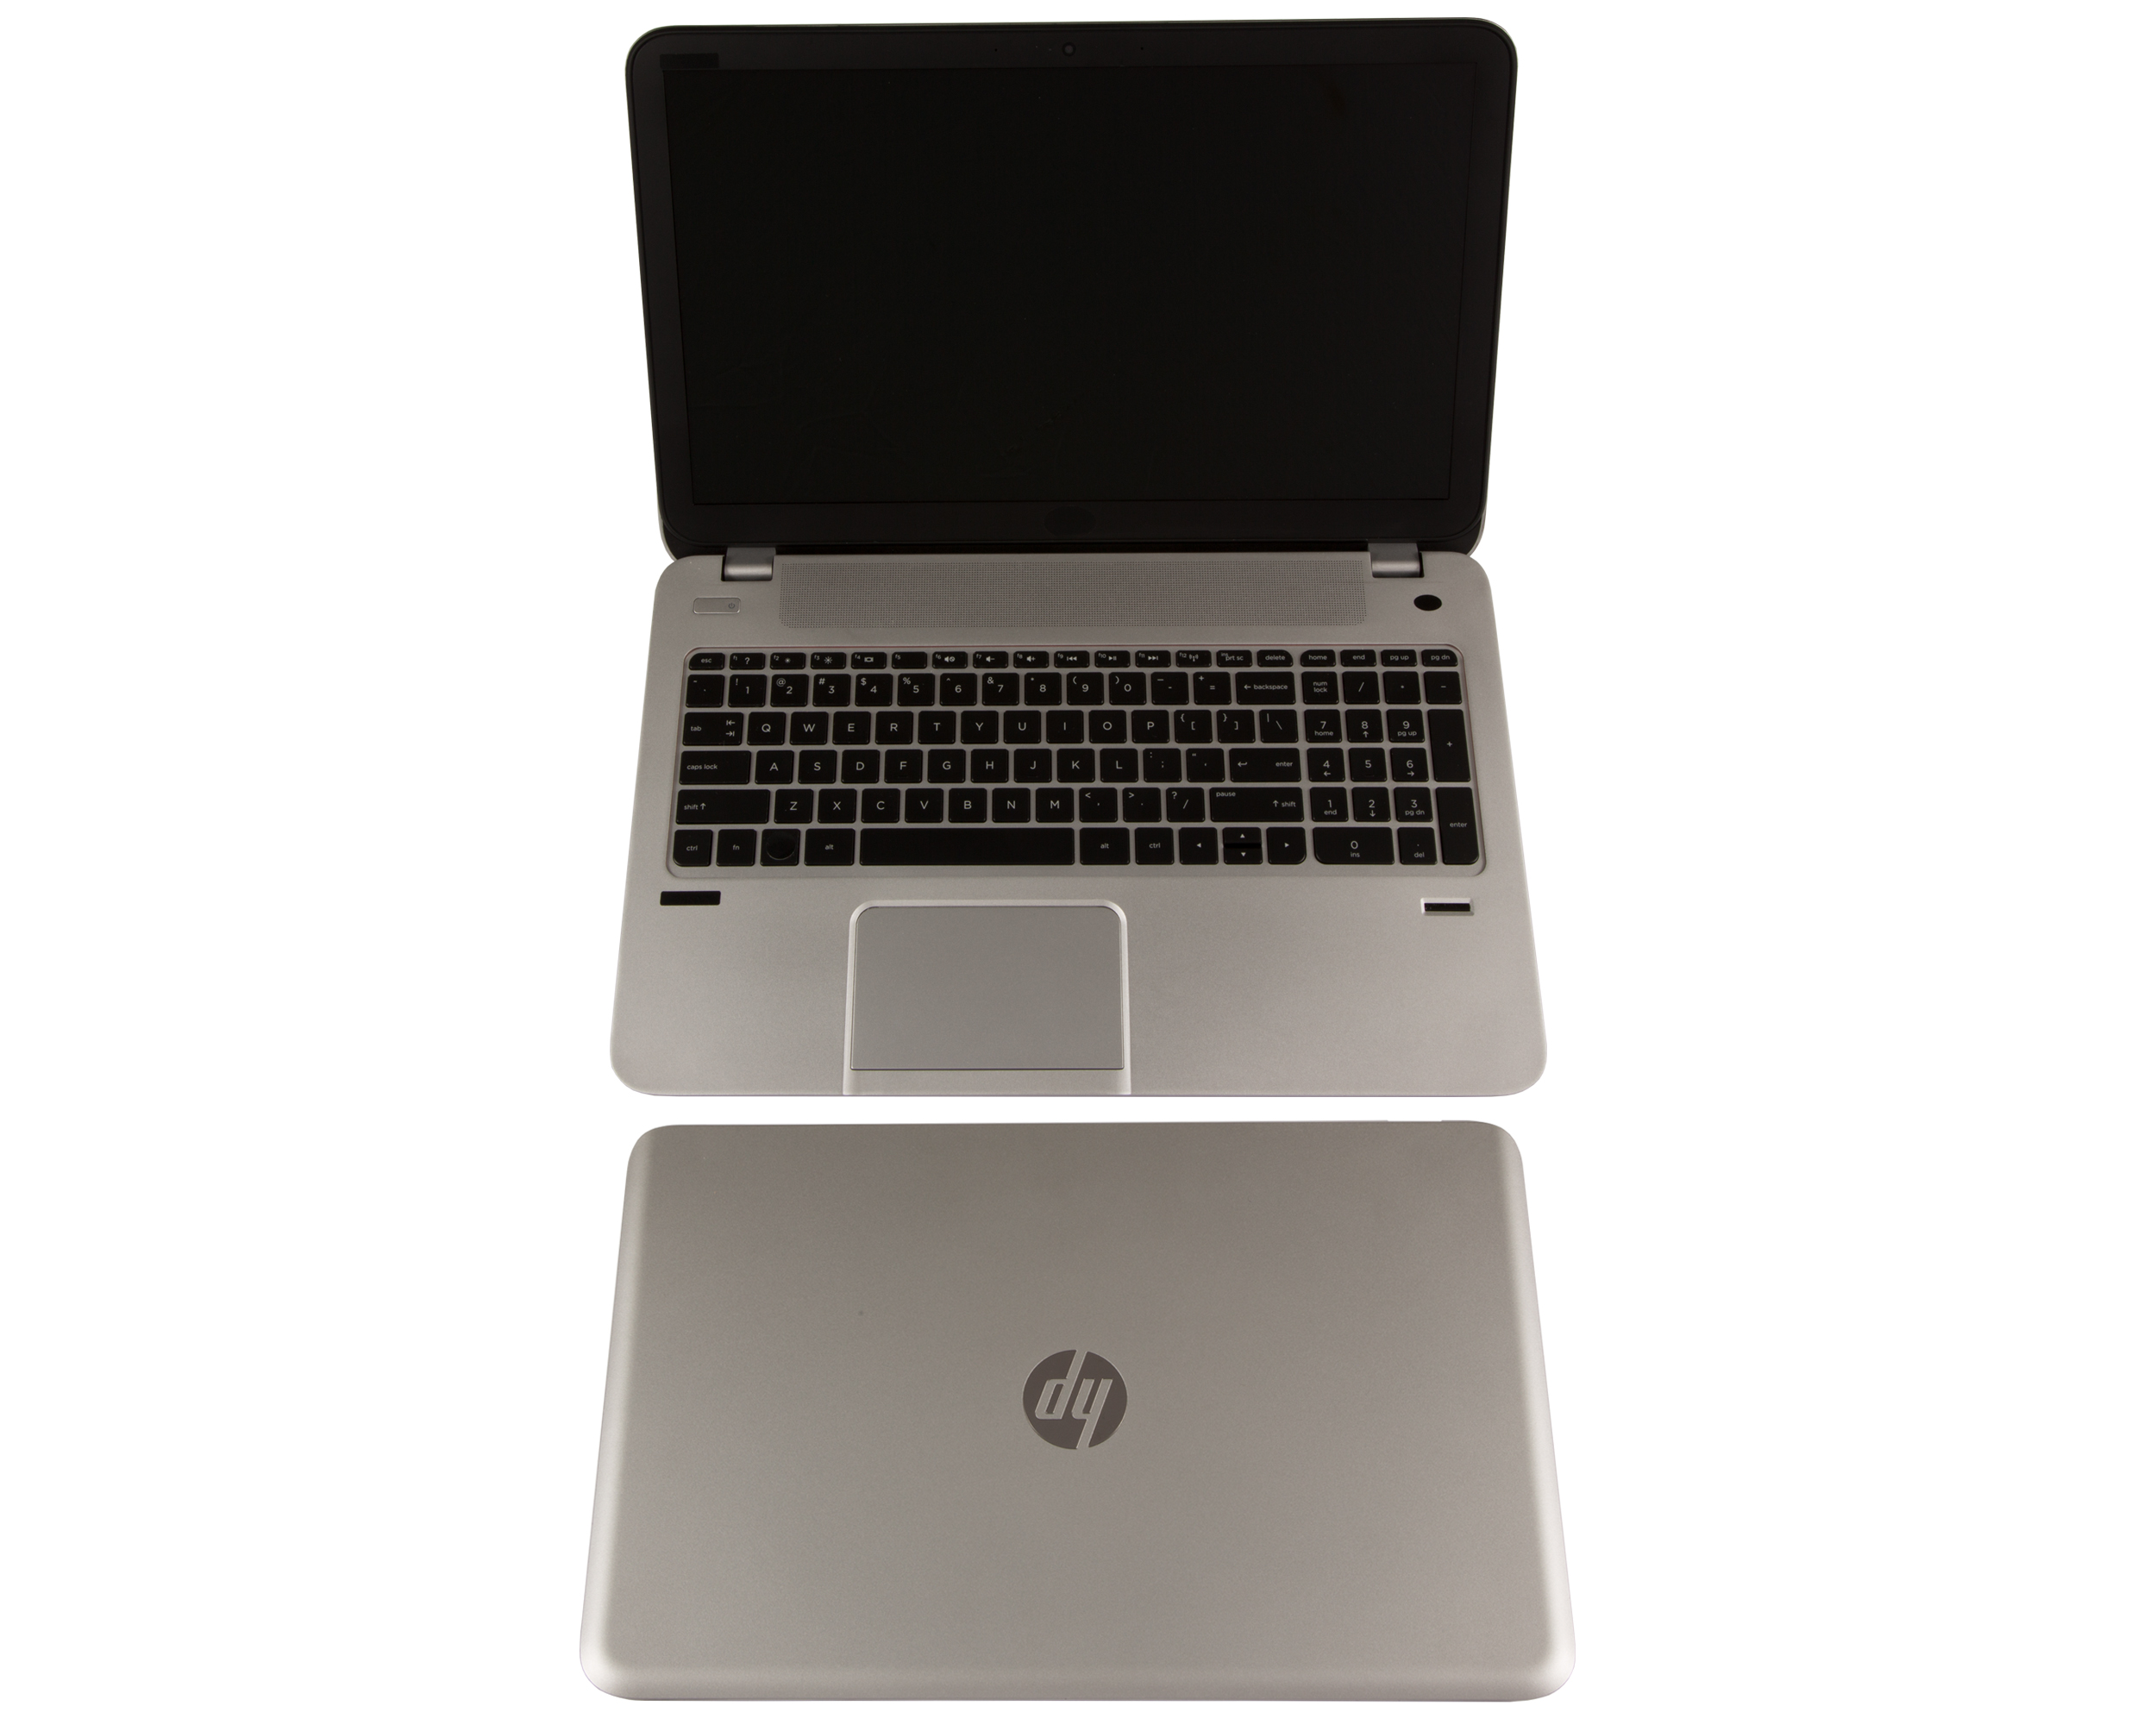 "HP Envy Notebook 15"" Silver"